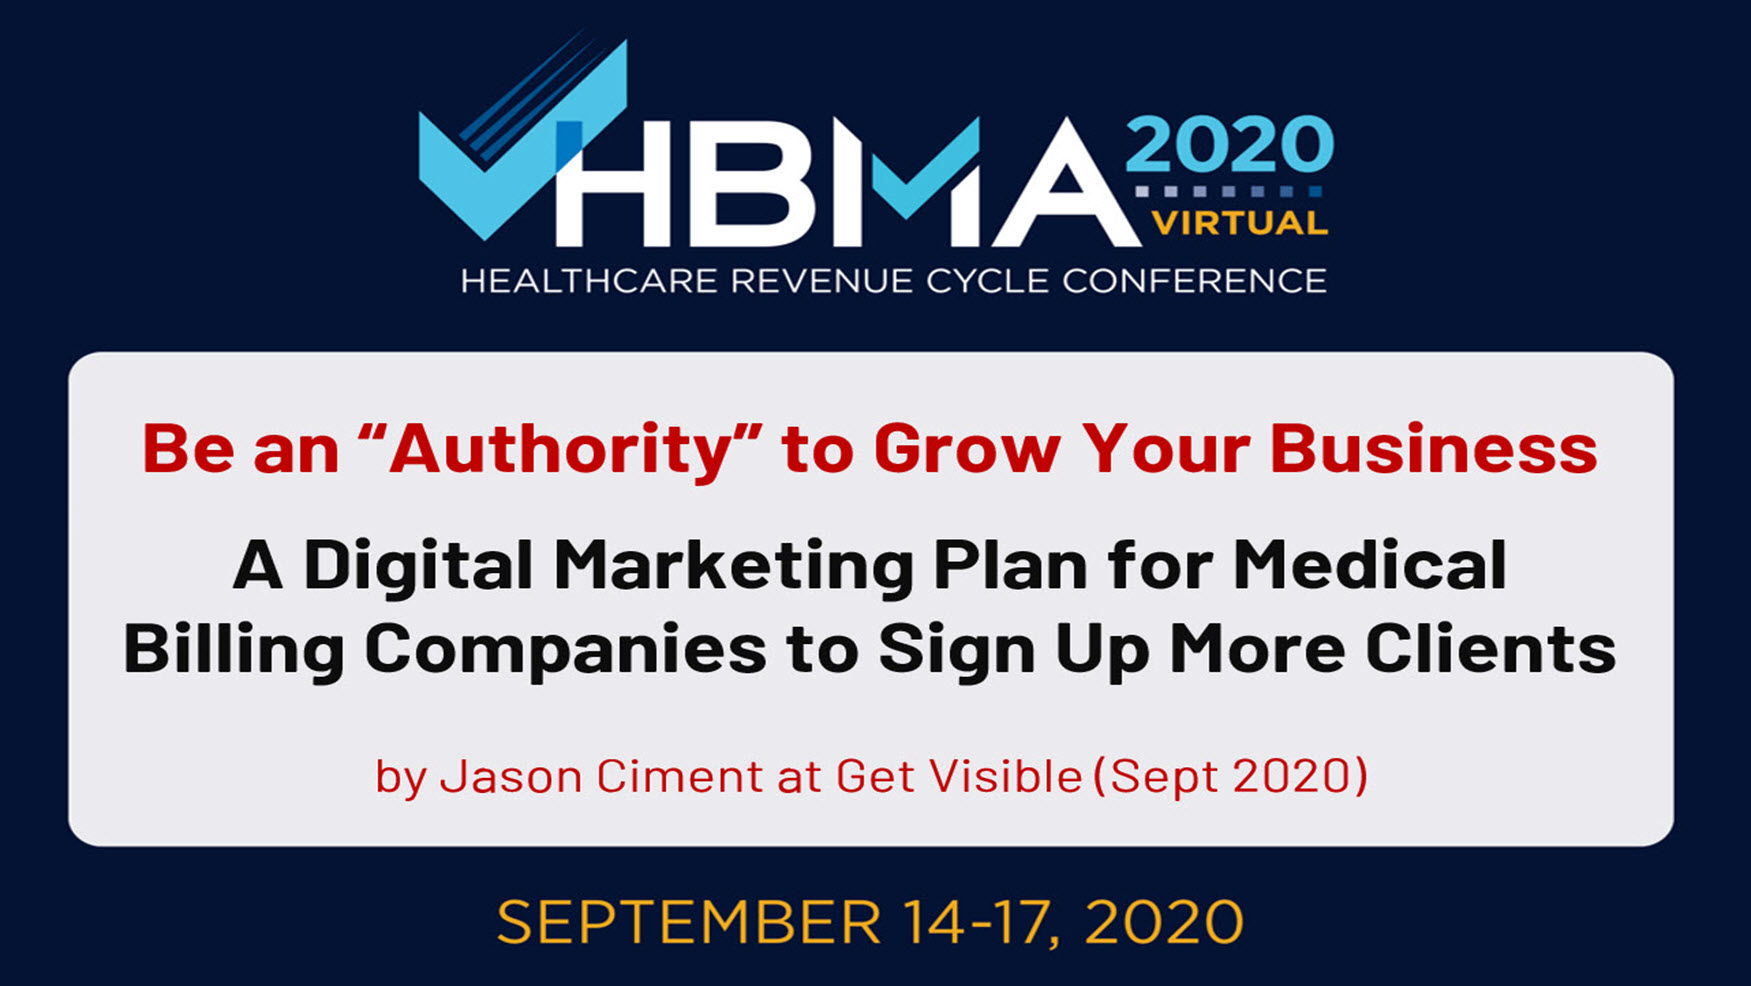 HBMA Annual Conference